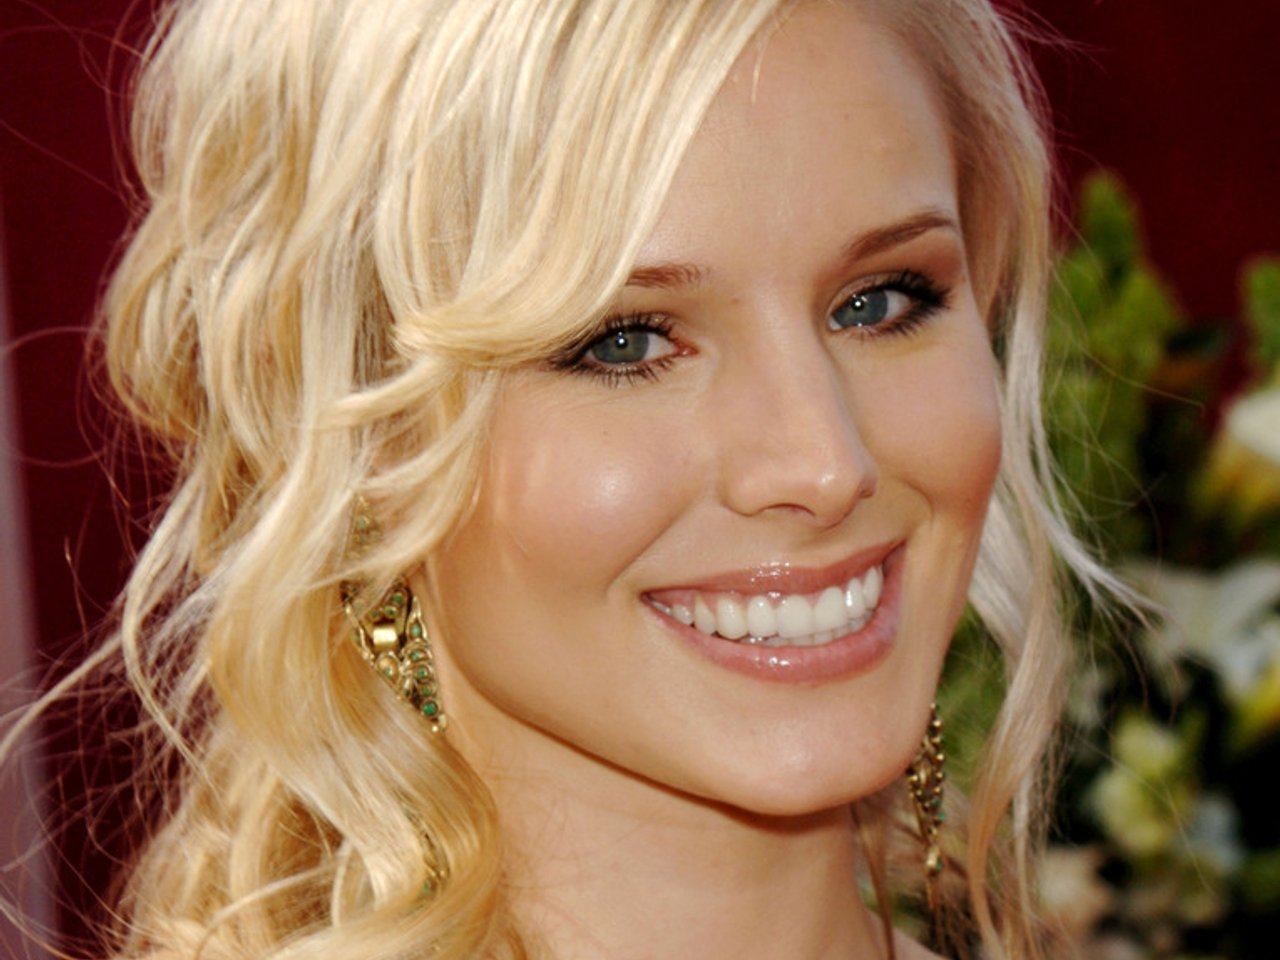 The 38-year old daughter of father (?) and mother(?) Kristen Bell in 2019 photo. Kristen Bell earned a  million dollar salary - leaving the net worth at 16 million in 2019